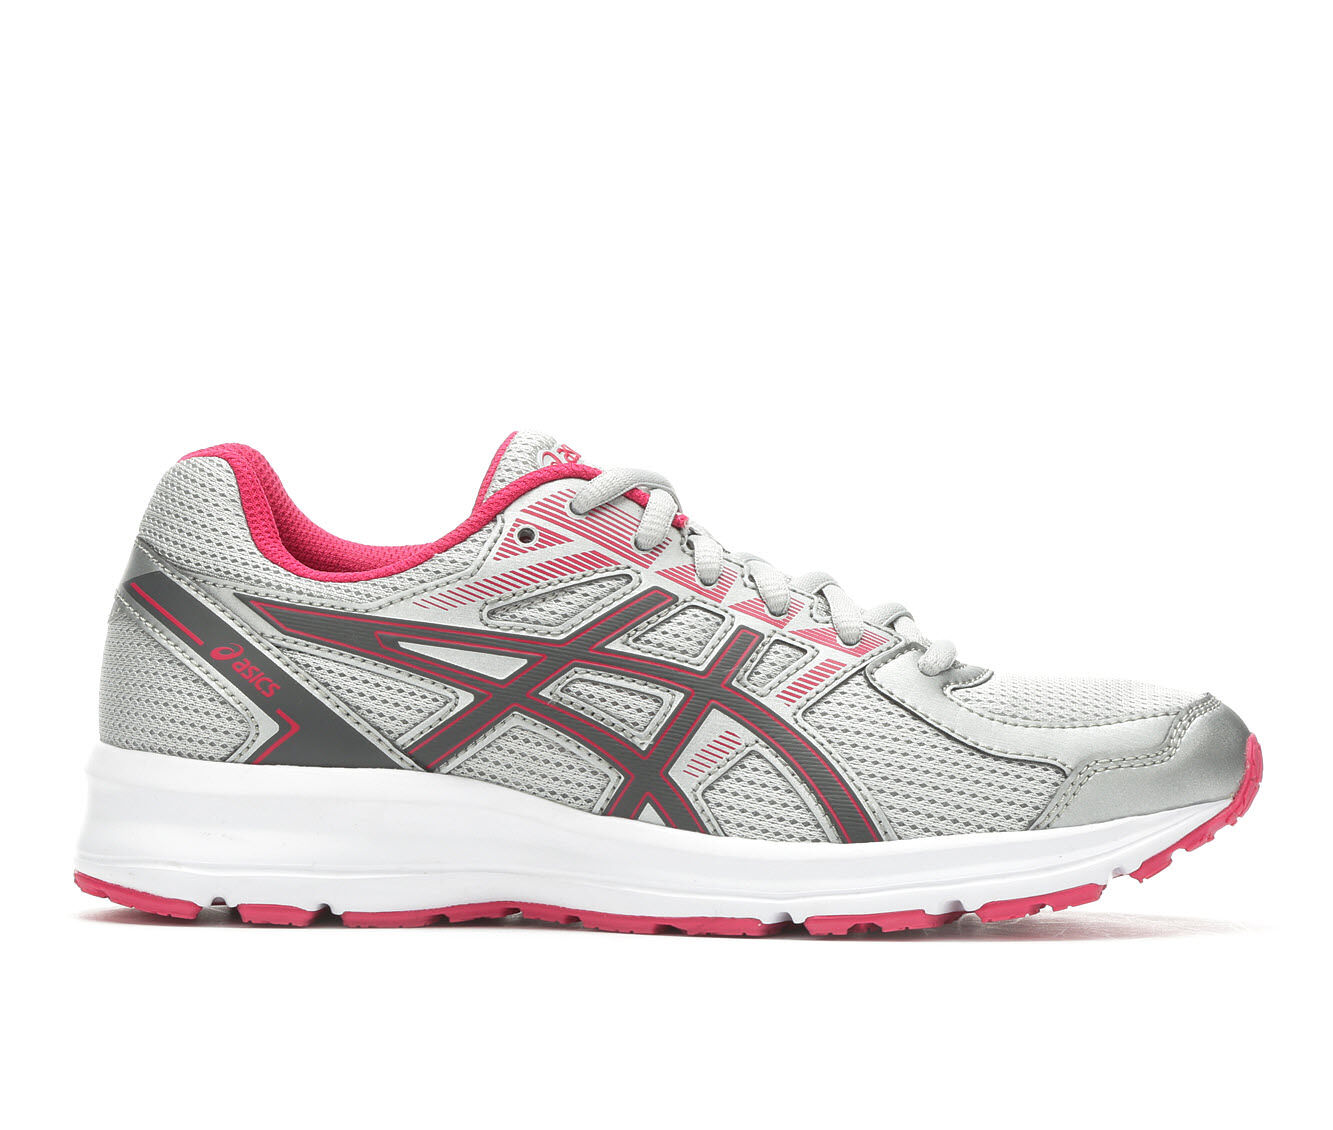 sale ebay low shipping for sale Women's ASICS Jolt Running Shoes outlet latest collections foJQ6pQD